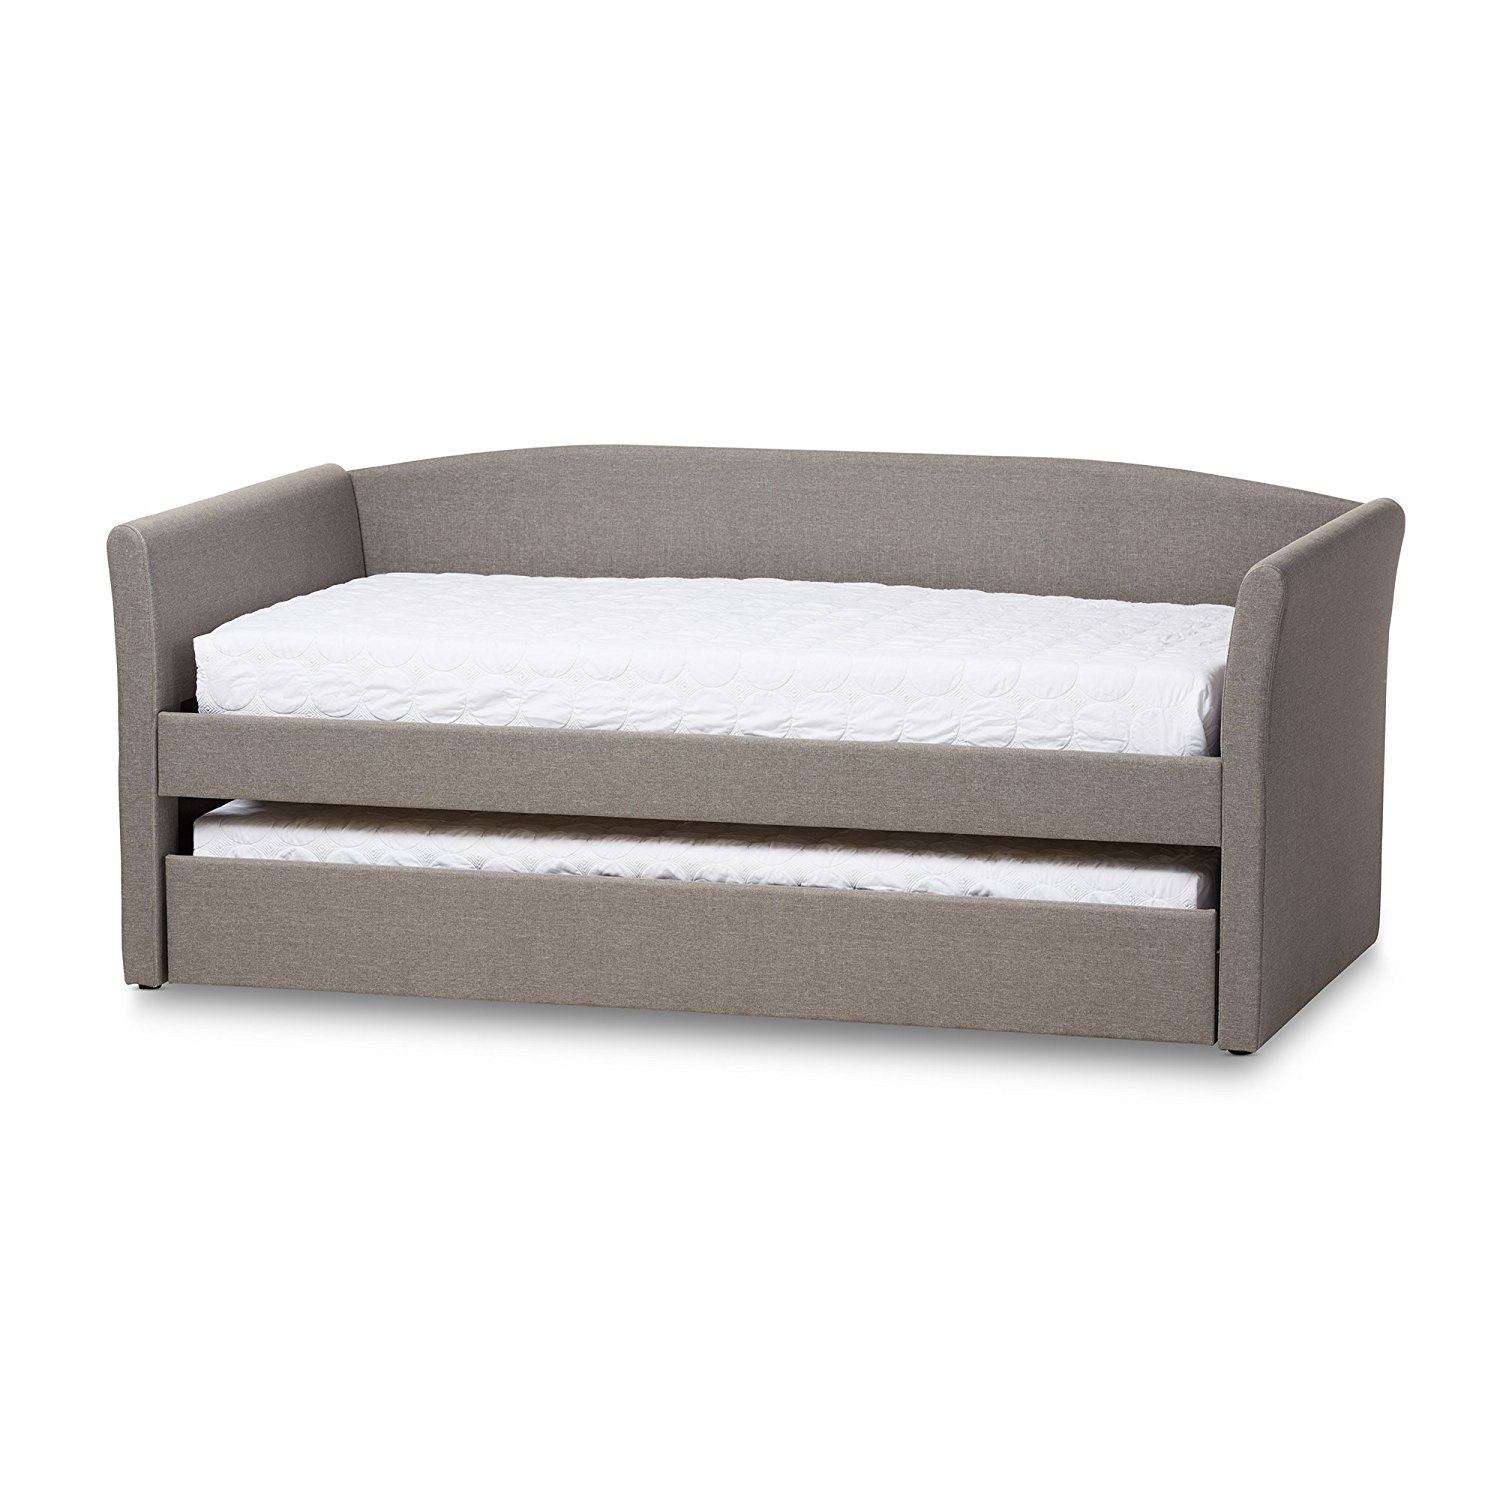 Baxton Studio Caroline Fabric Upholstered Daybed with Guest Trundle Bed, Twin, Grey